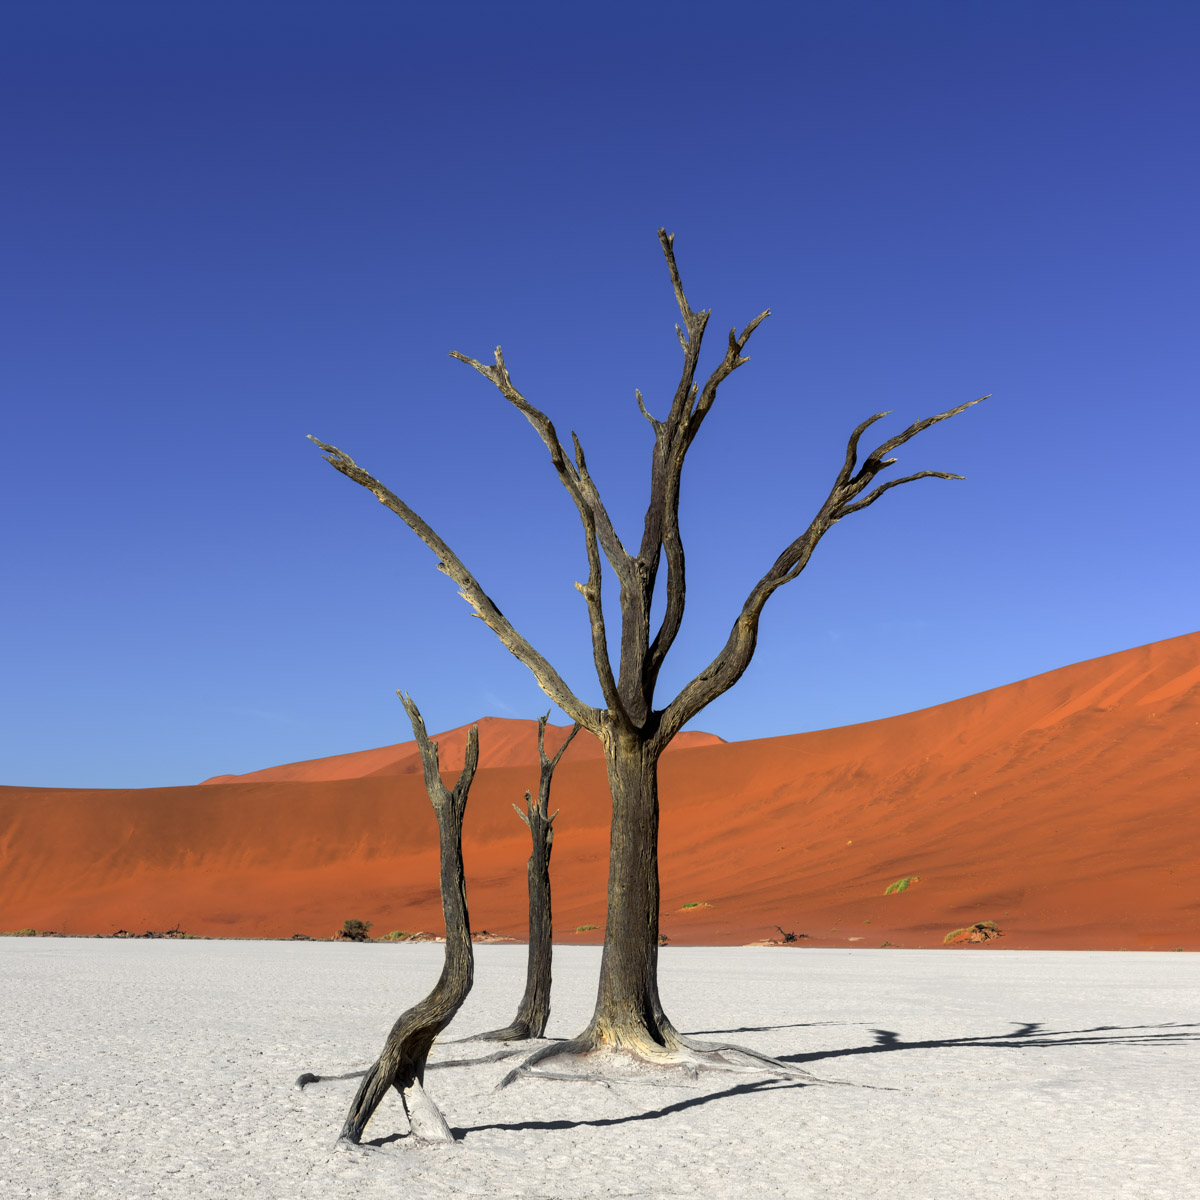 Dead Camelthorn Trees in Deadvlei, Namibia